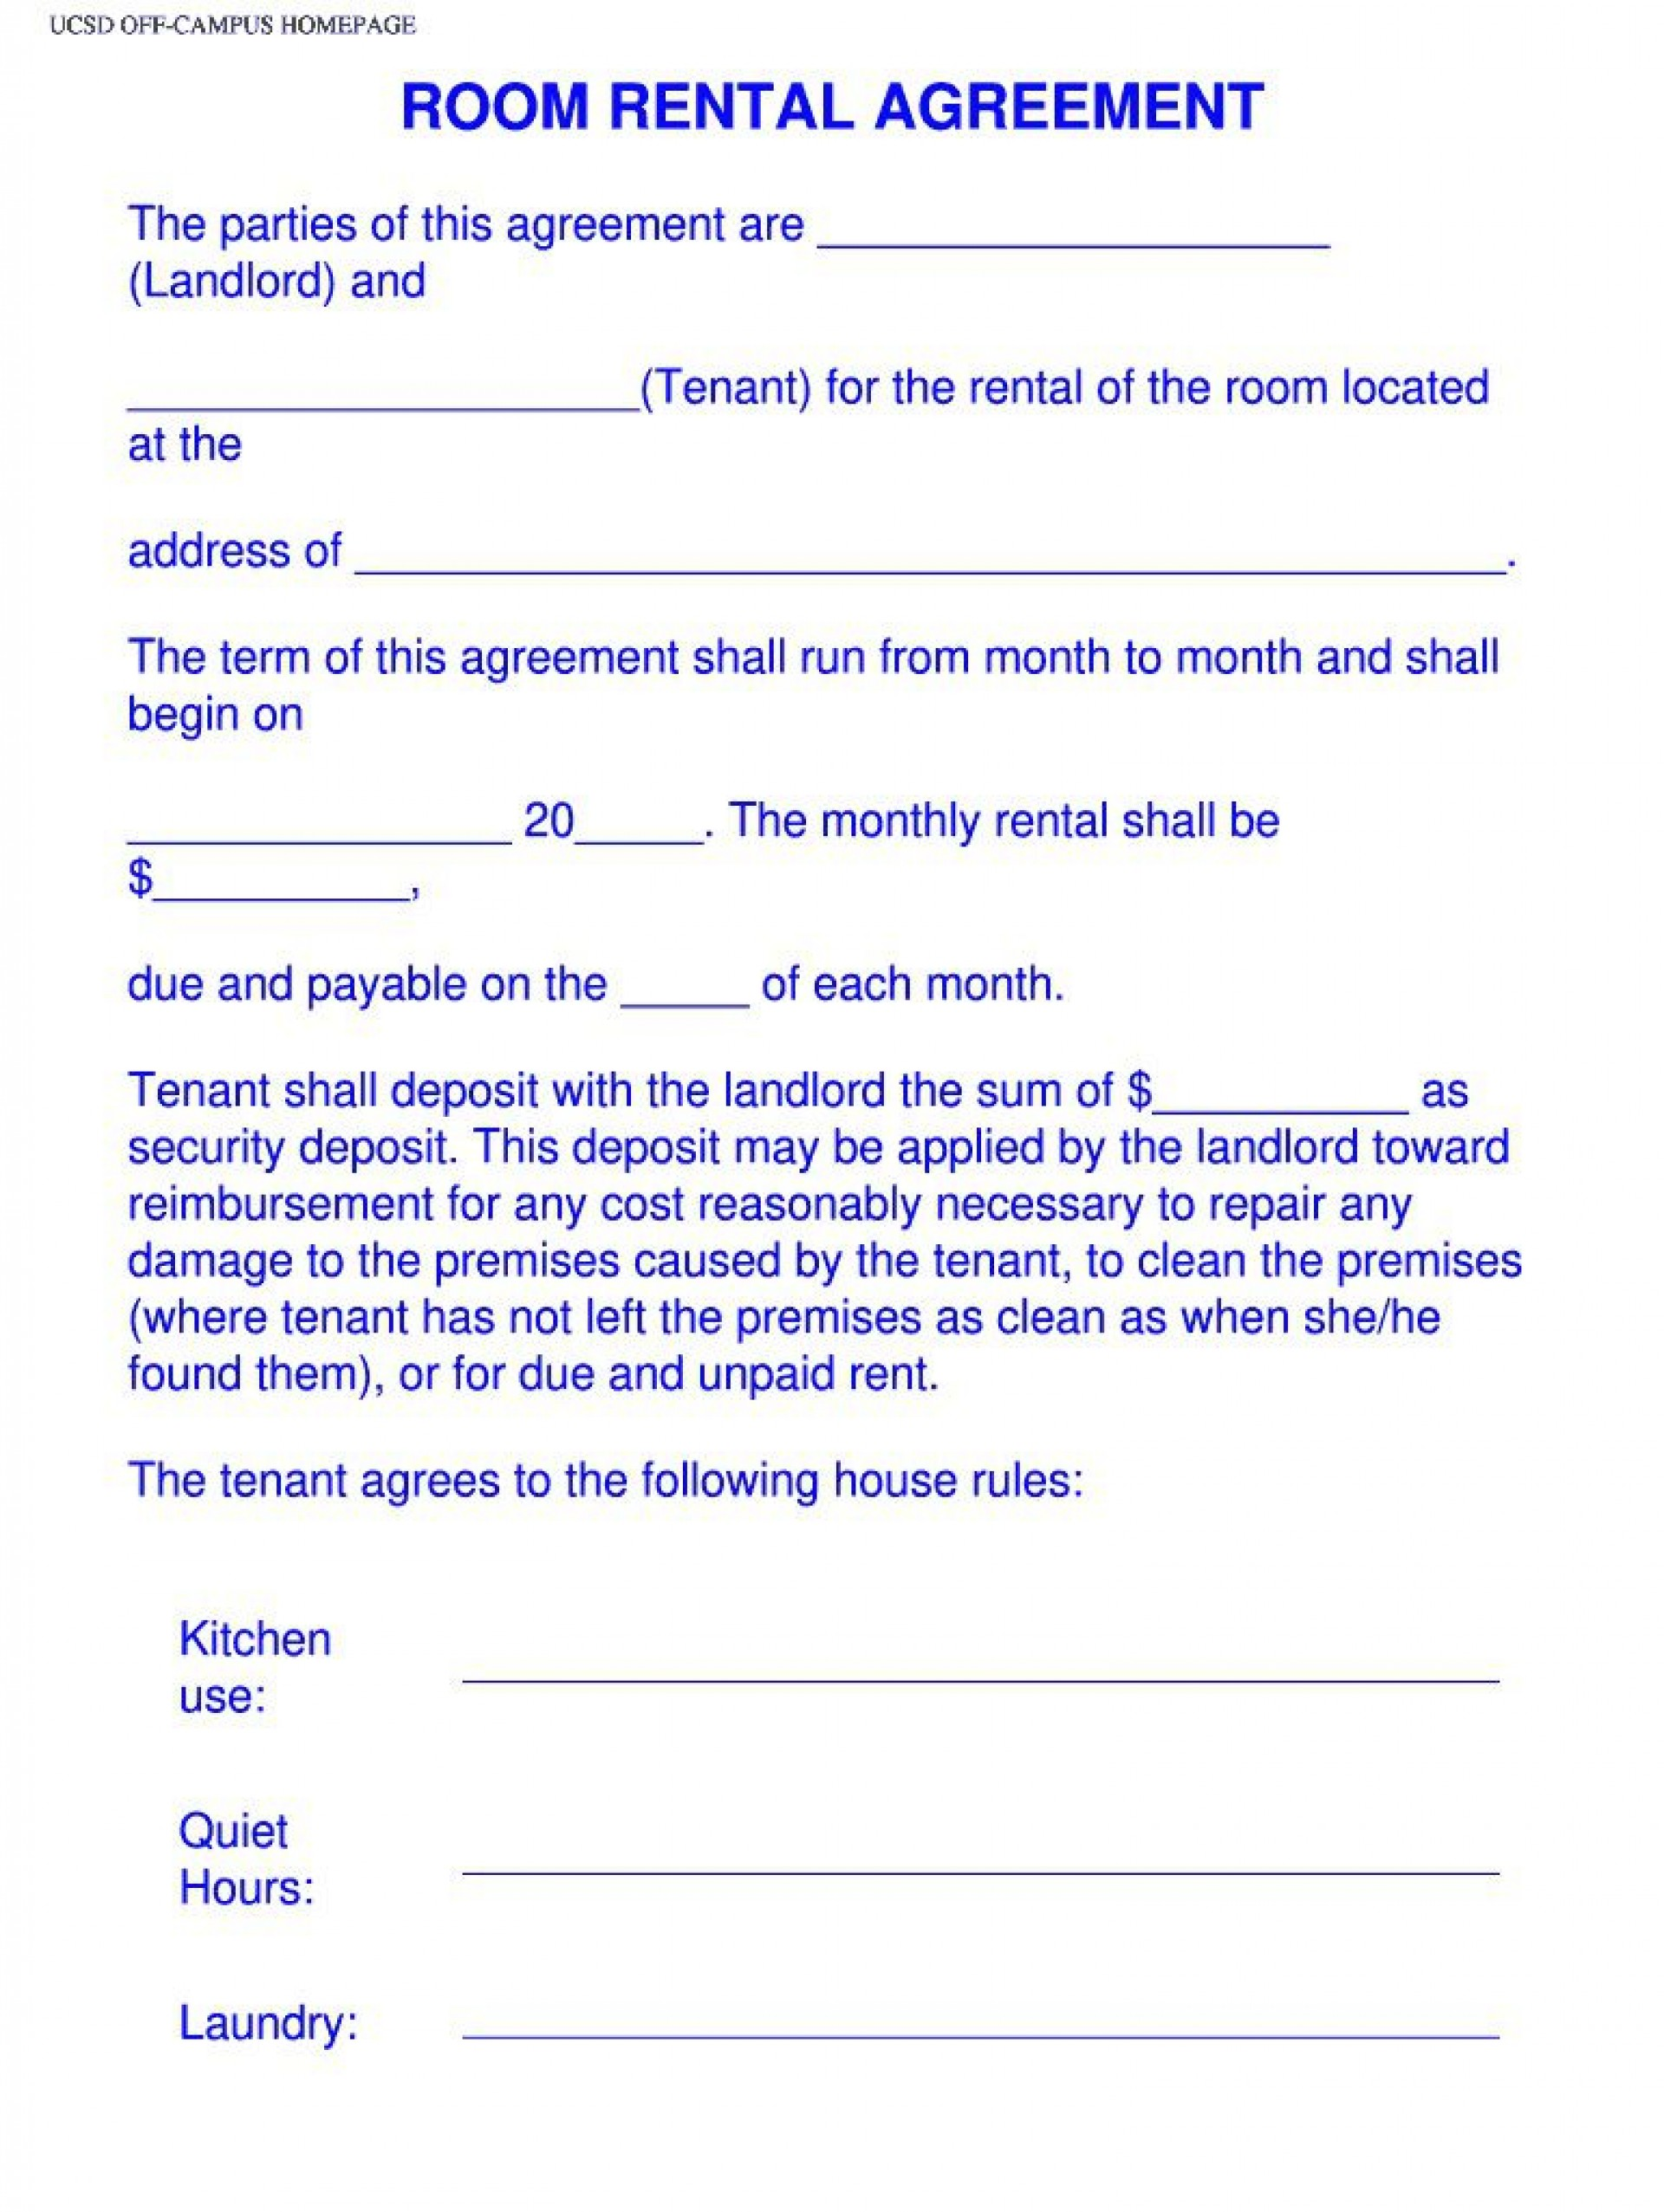 003 Magnificent Simple Room Rental Agreement Template Idea  Free1920